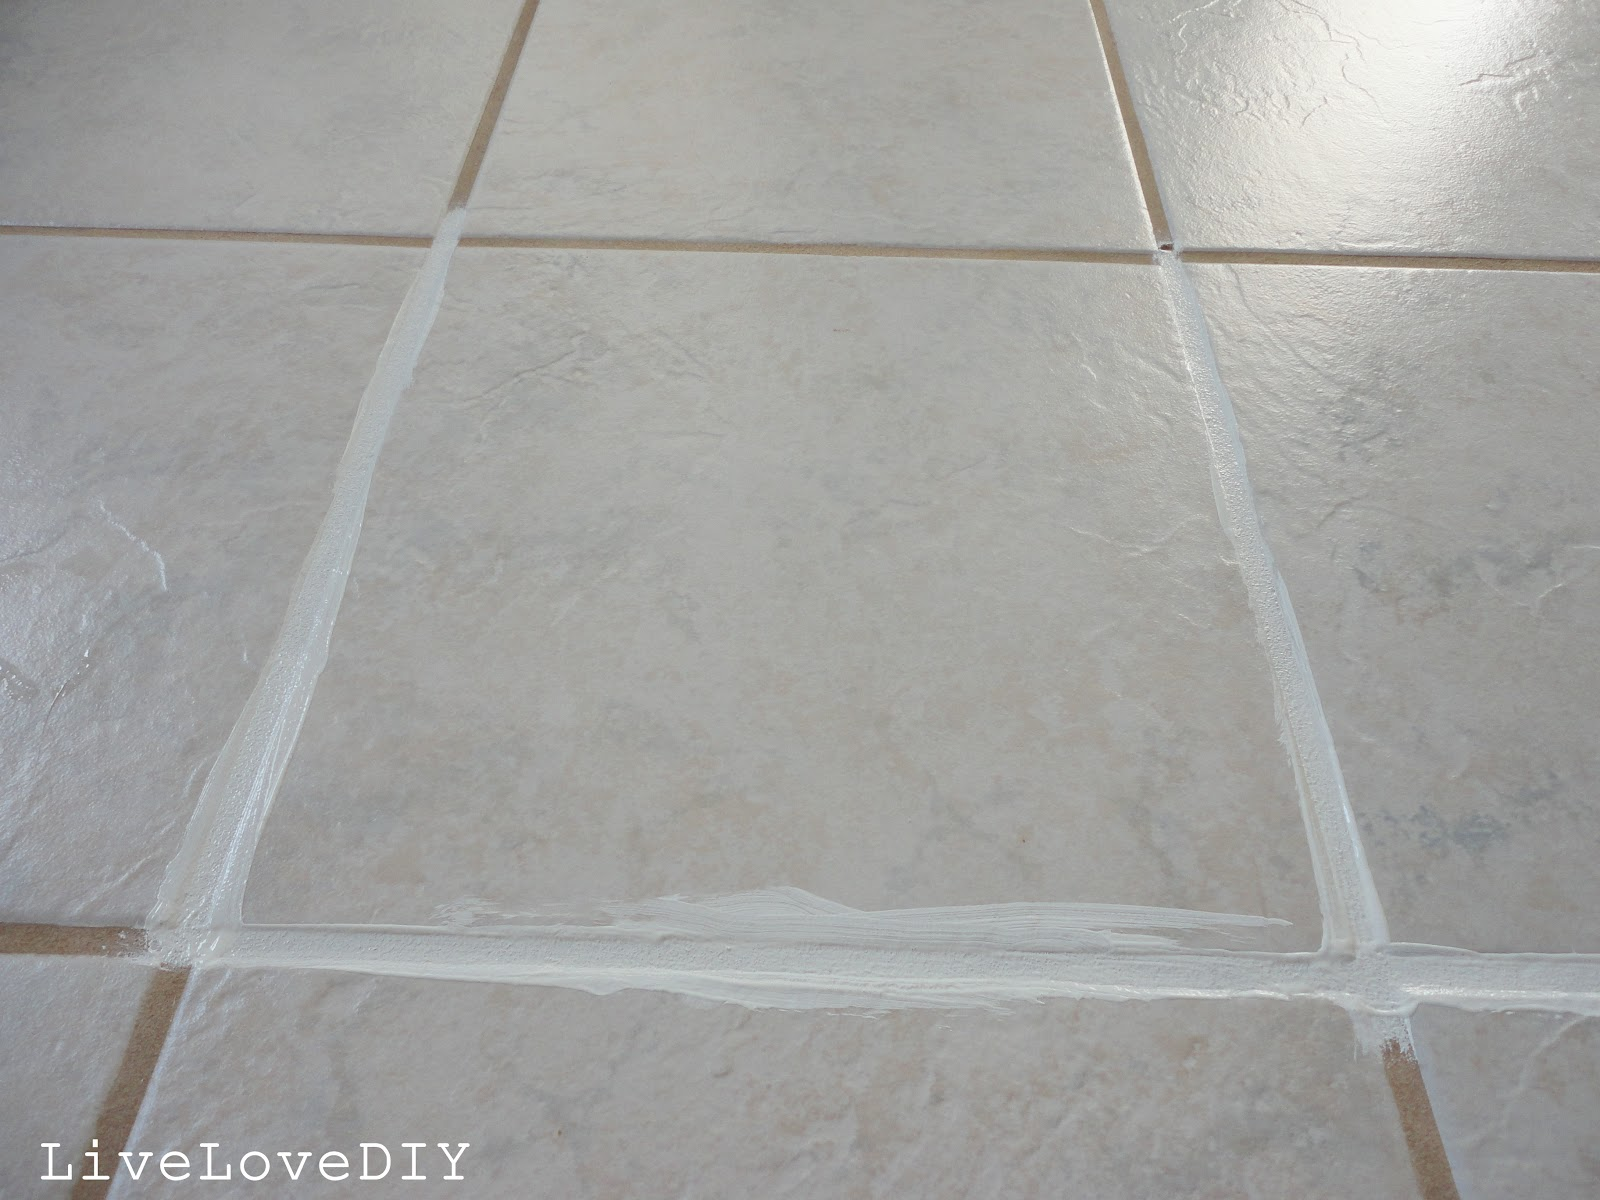 Livelovediy how to restore dirty tile grout dailygadgetfo Choice Image